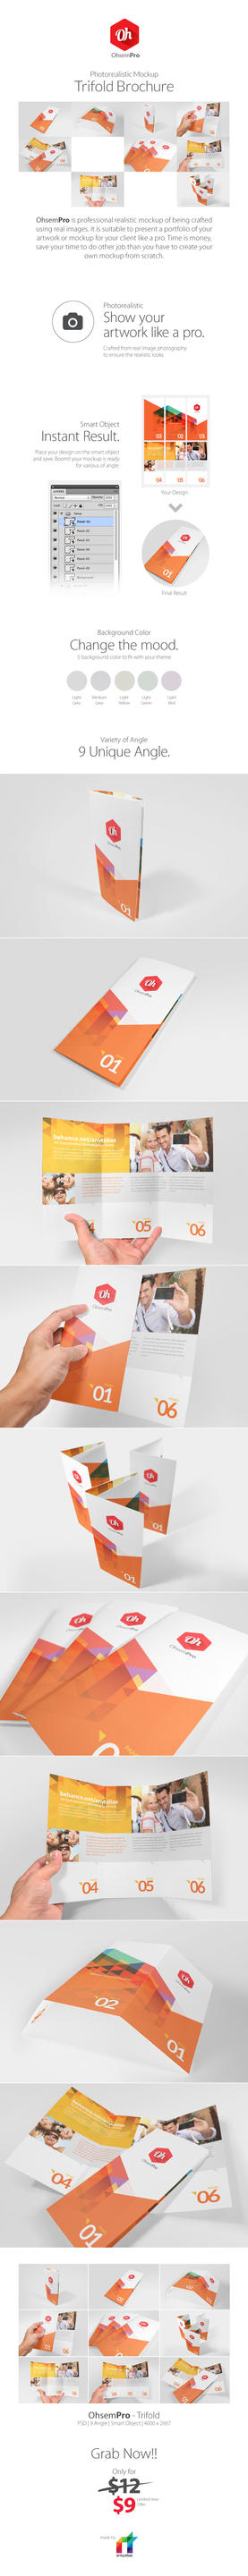 OhsemPro - Trifold Mockup by antyalias